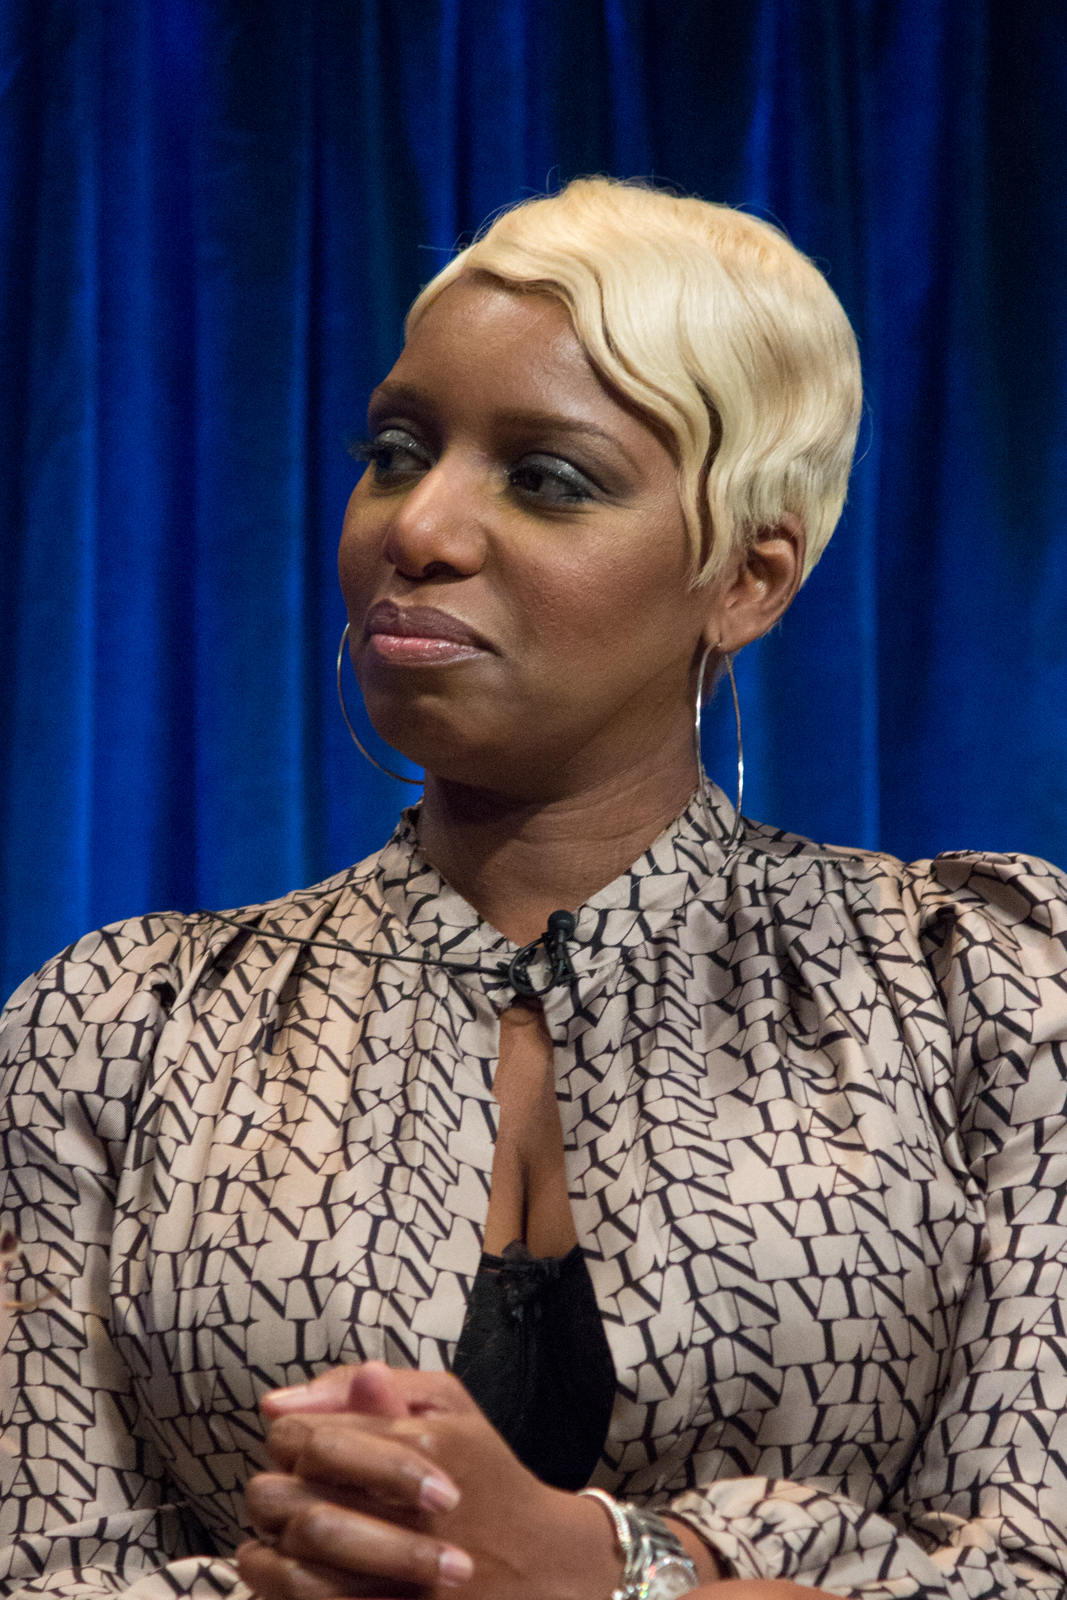 Hot Leaked NeNe Leakes naked photo 2017